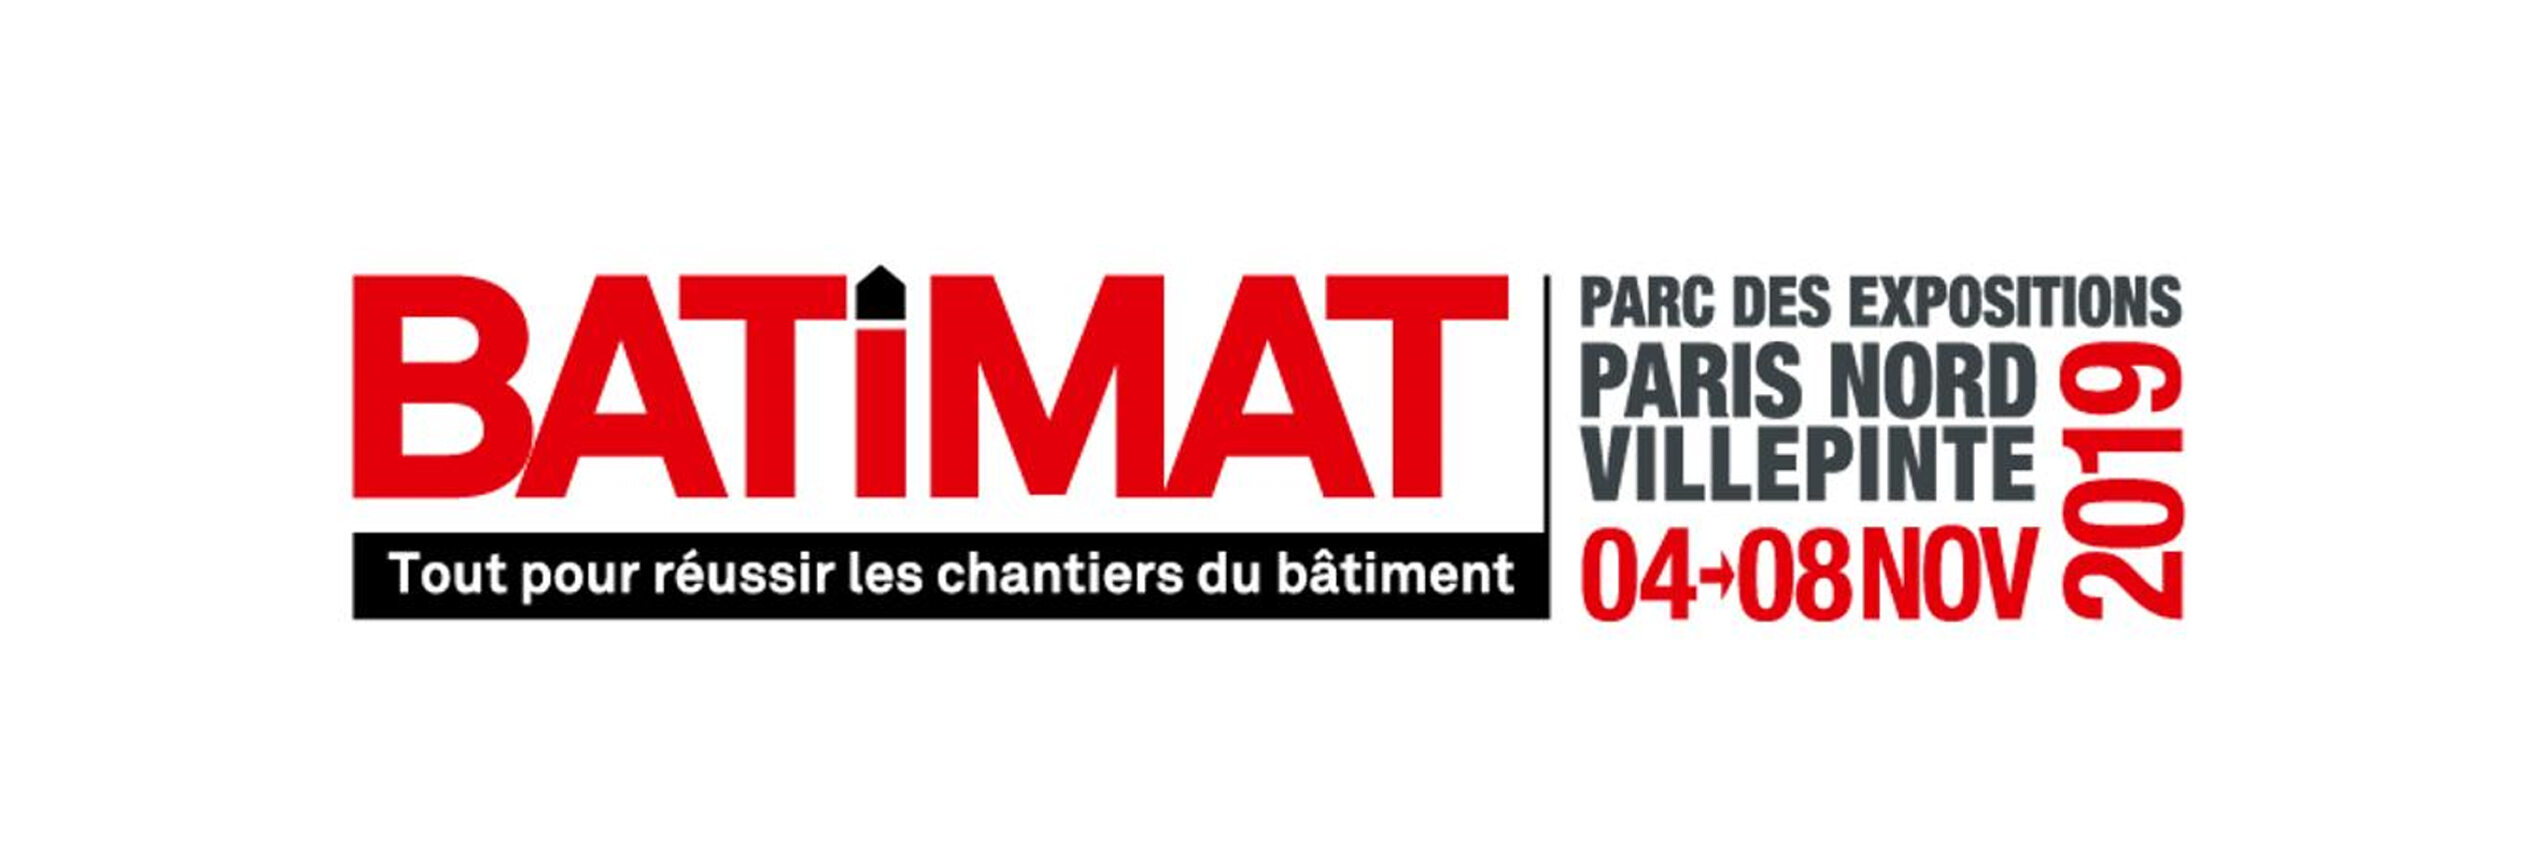 Showcasing innovations at Batimat 2019